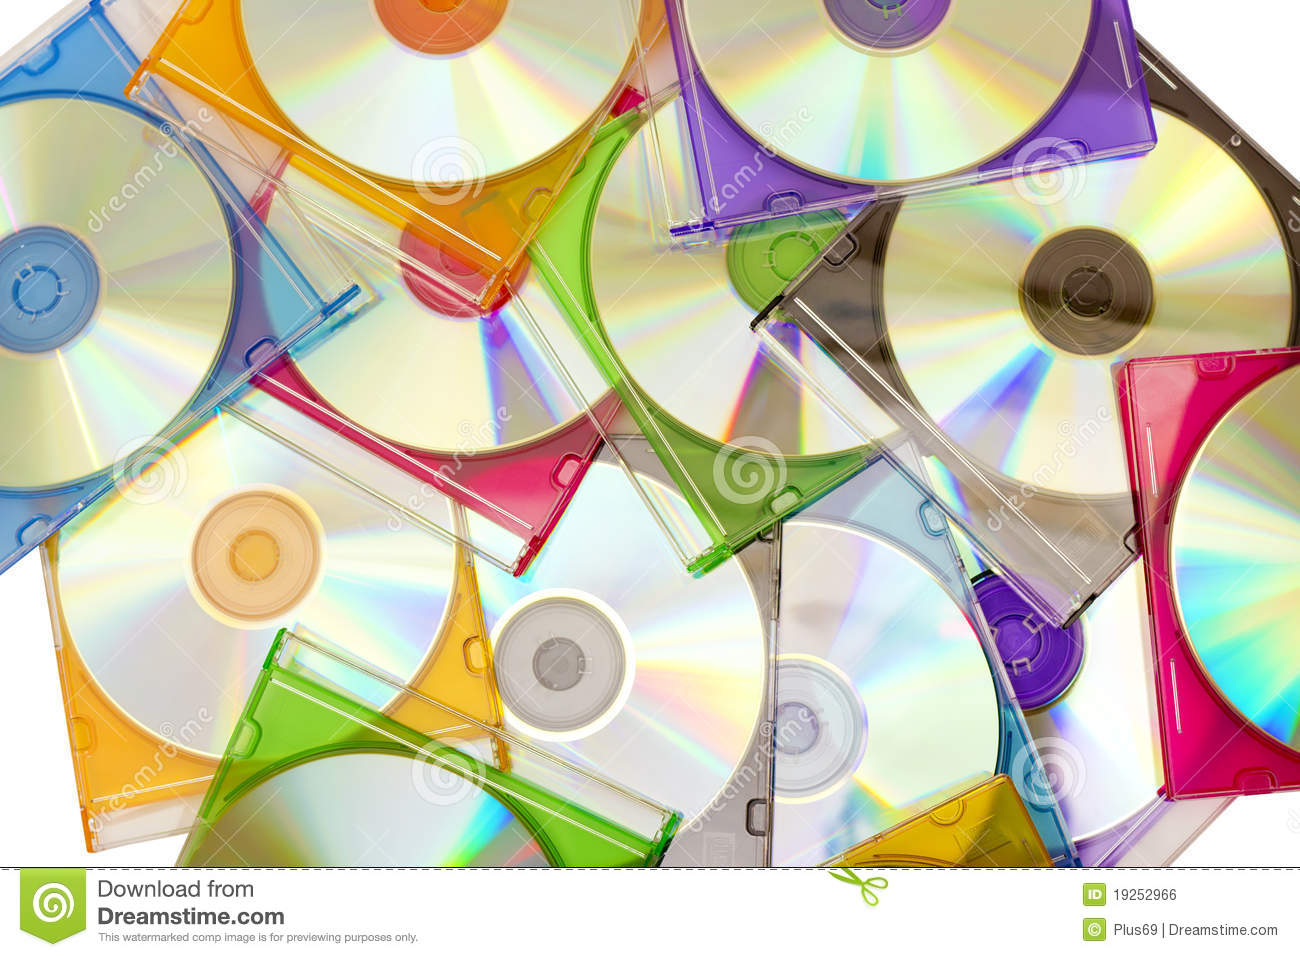 Colorful CDs in boxes